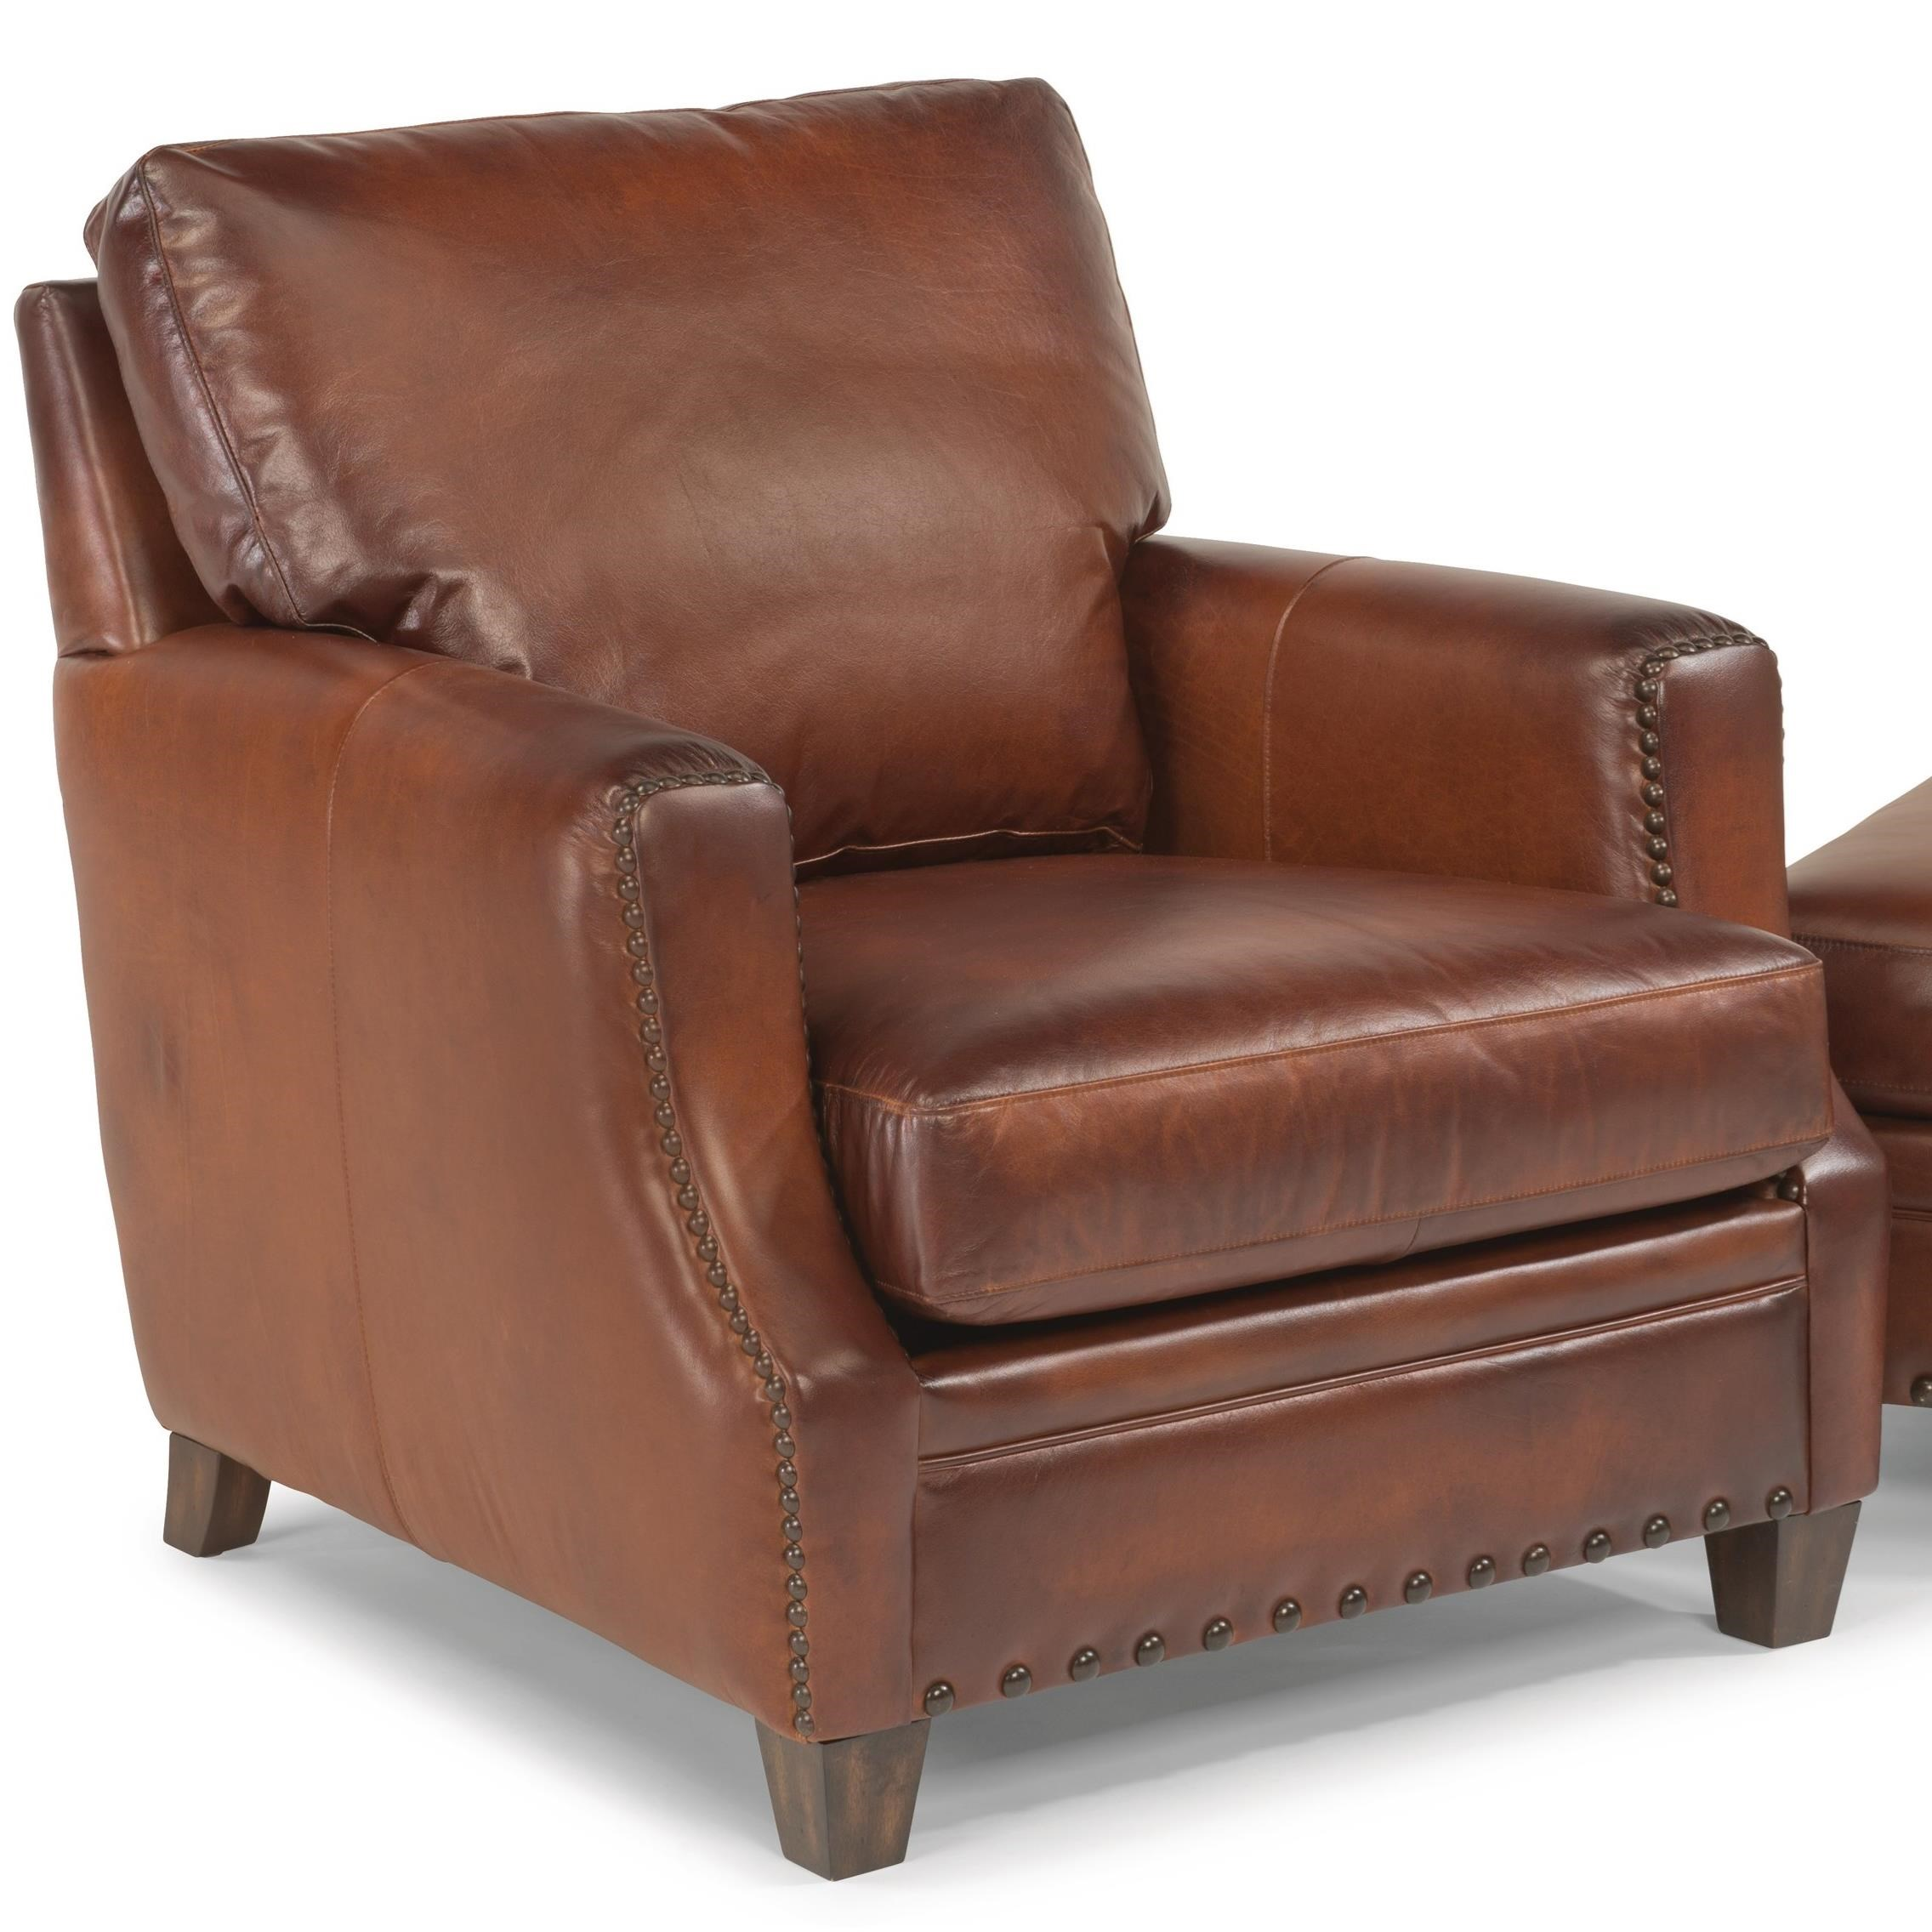 Rustic Leather Chairs Latitudes Maxfield Rustic Leather Chair With Nailhead Trim By Flexsteel At Rooms And Rest